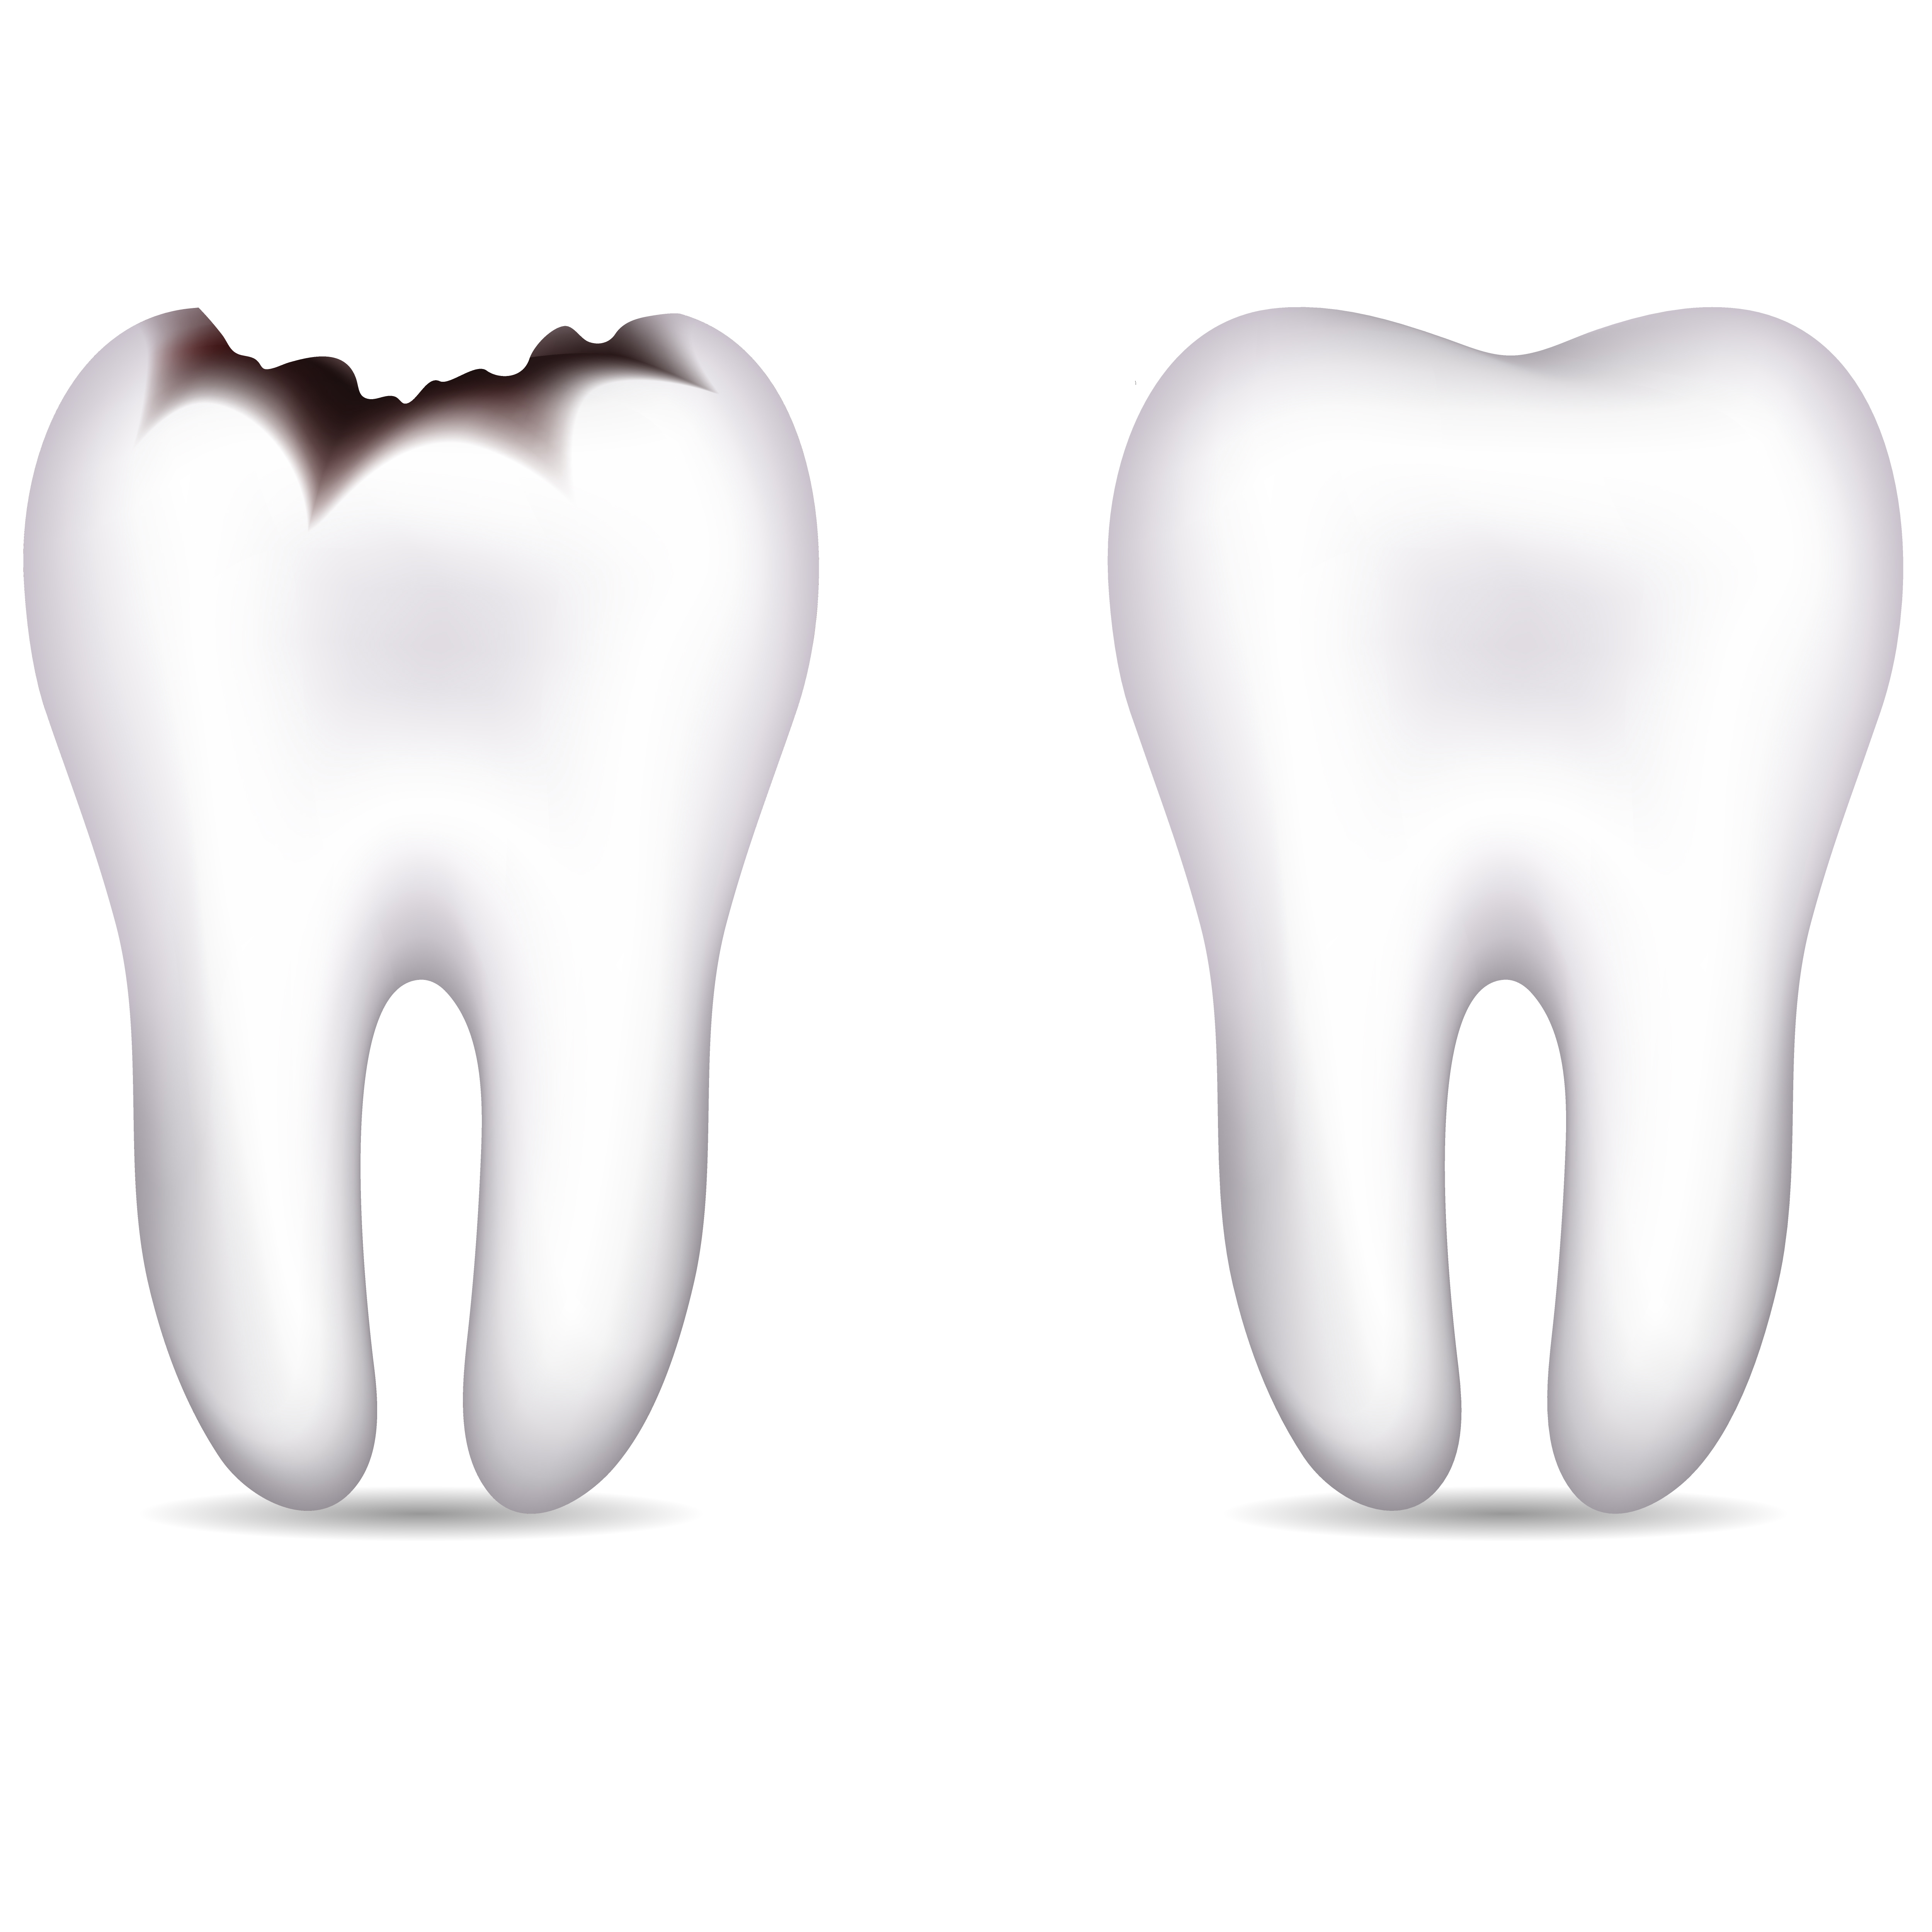 Cavity images clipart free Picture Of A Tooth | Free download best Picture Of A Tooth on ... free